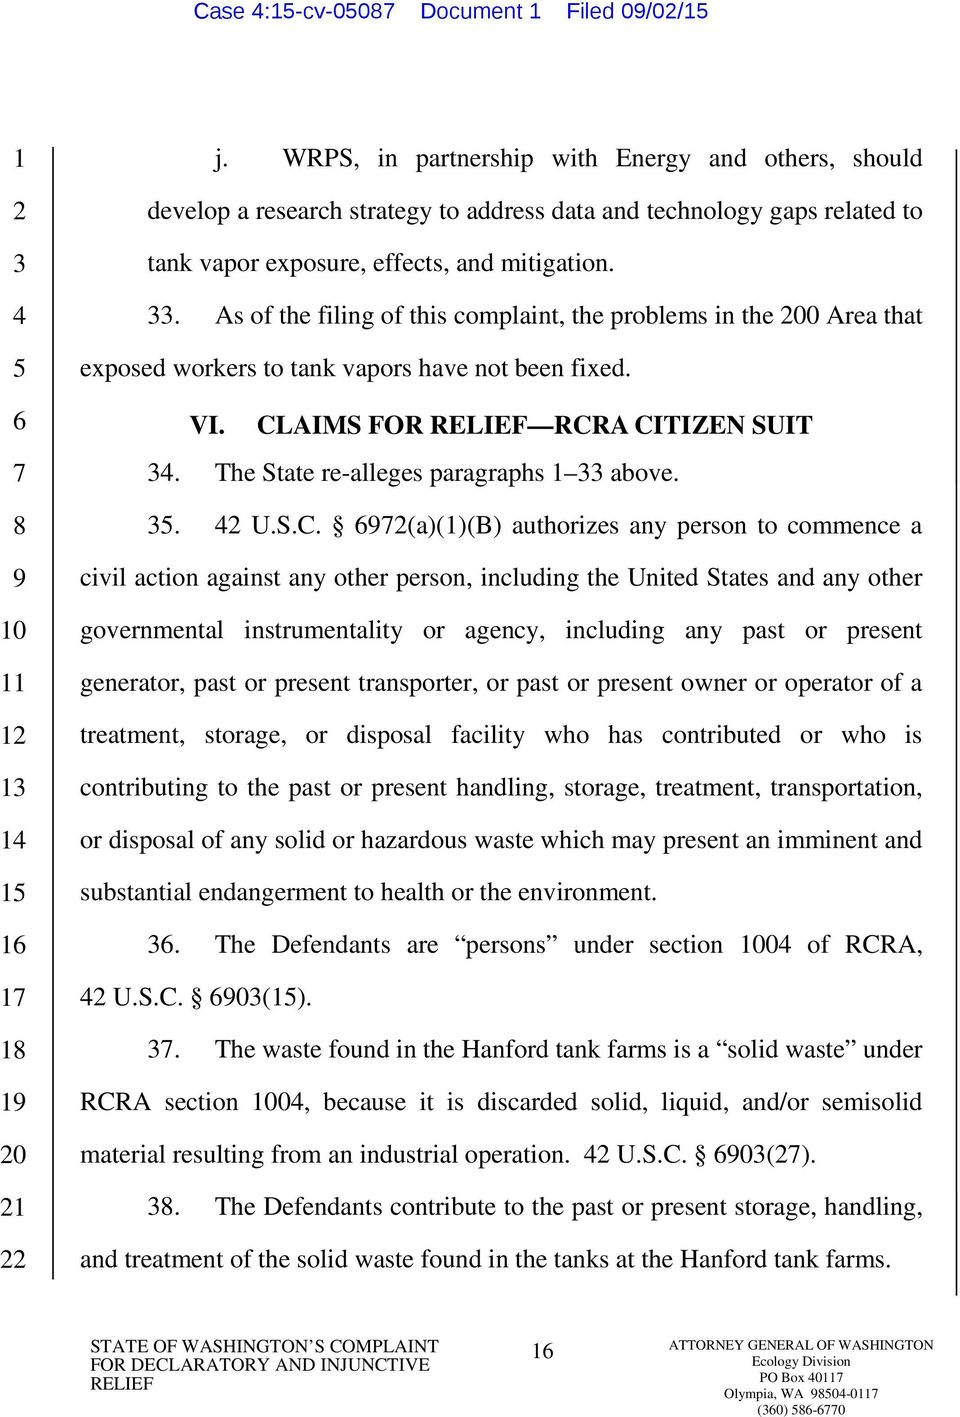 . As of the filing of this complaint, the problems in the 00 Area that exposed workers to tank vapors have not been fixed. VI. CLAIMS FOR RCRA CITIZEN SUIT. The State re-alleges paragraphs above.. U.